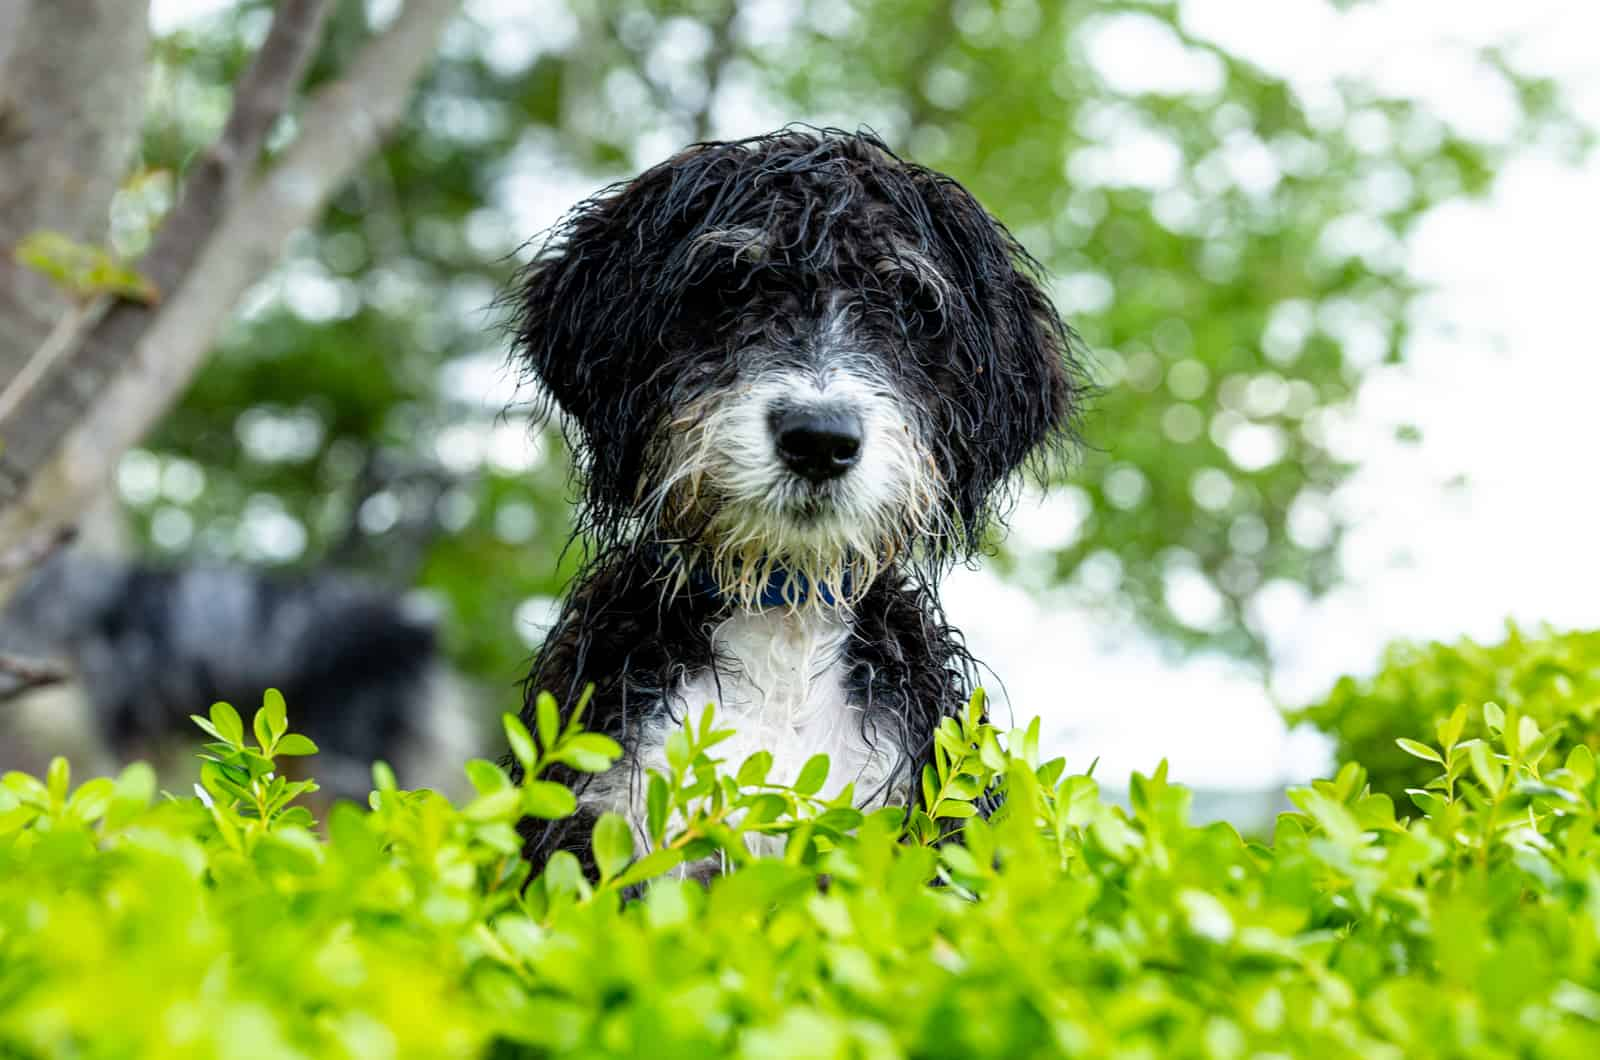 bernedoodle dog posing in front of green plants